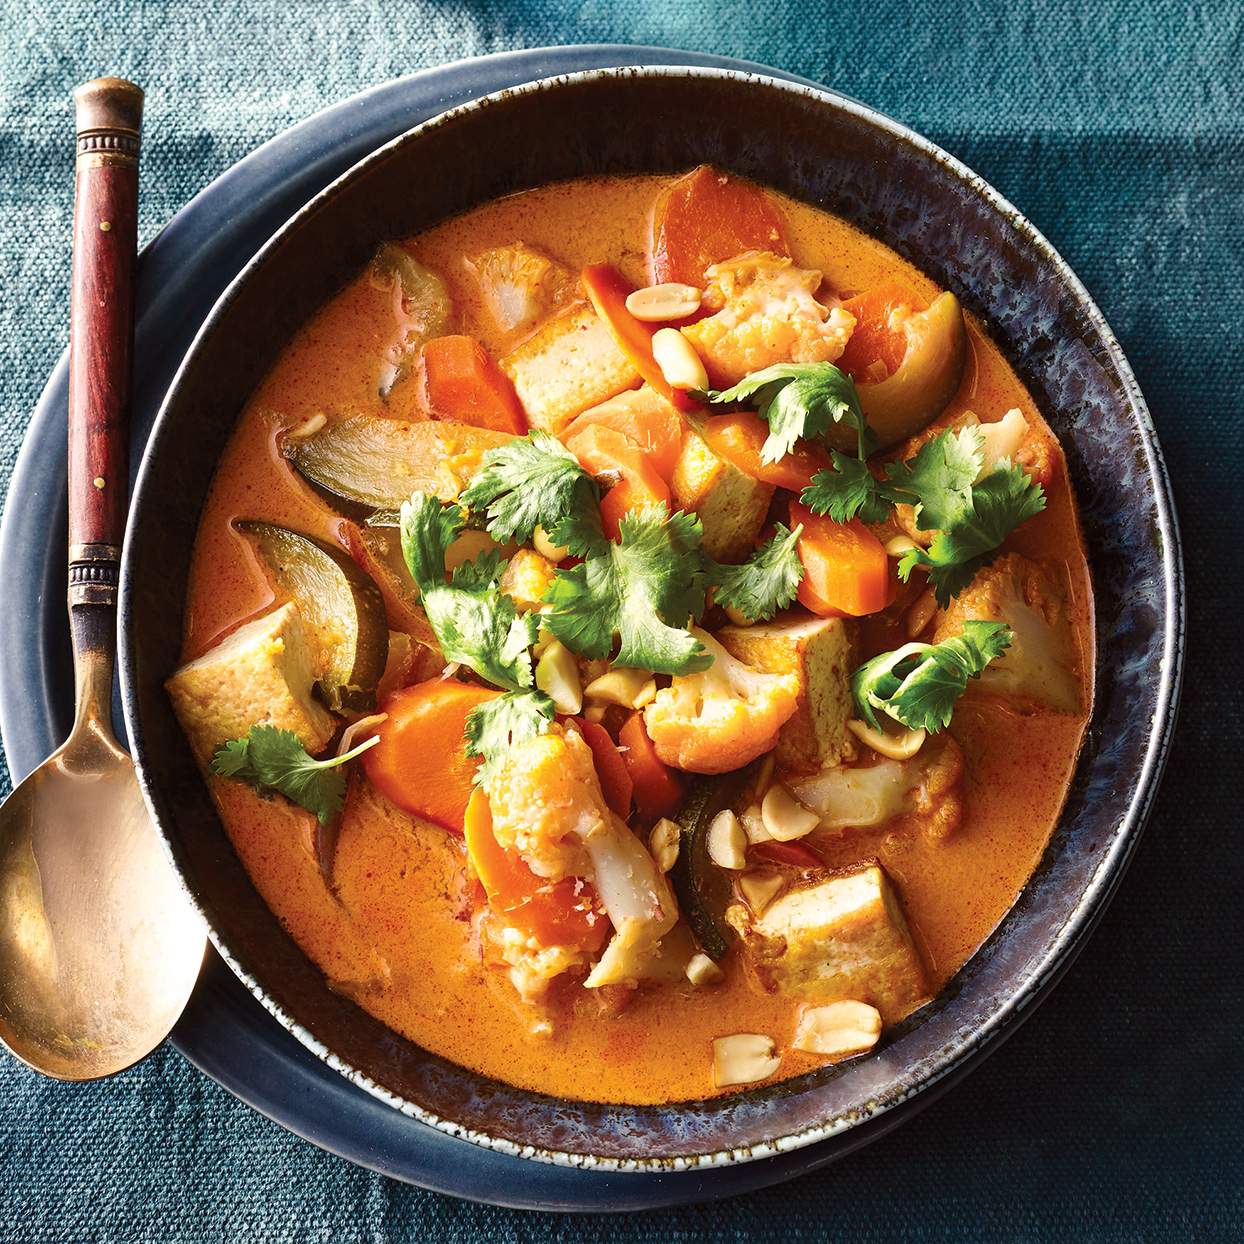 Cauliflower and tofu are ideal ingredients for this soup. The cauliflower soaks up the cooking liquid, and the tofu keeps the dish light, allowing the bold flavors in the liquid--predominantly the curry paste and lemongrass--to take center stage in this slow-cooker tofu stew. Source: Everyday Slow Cooker